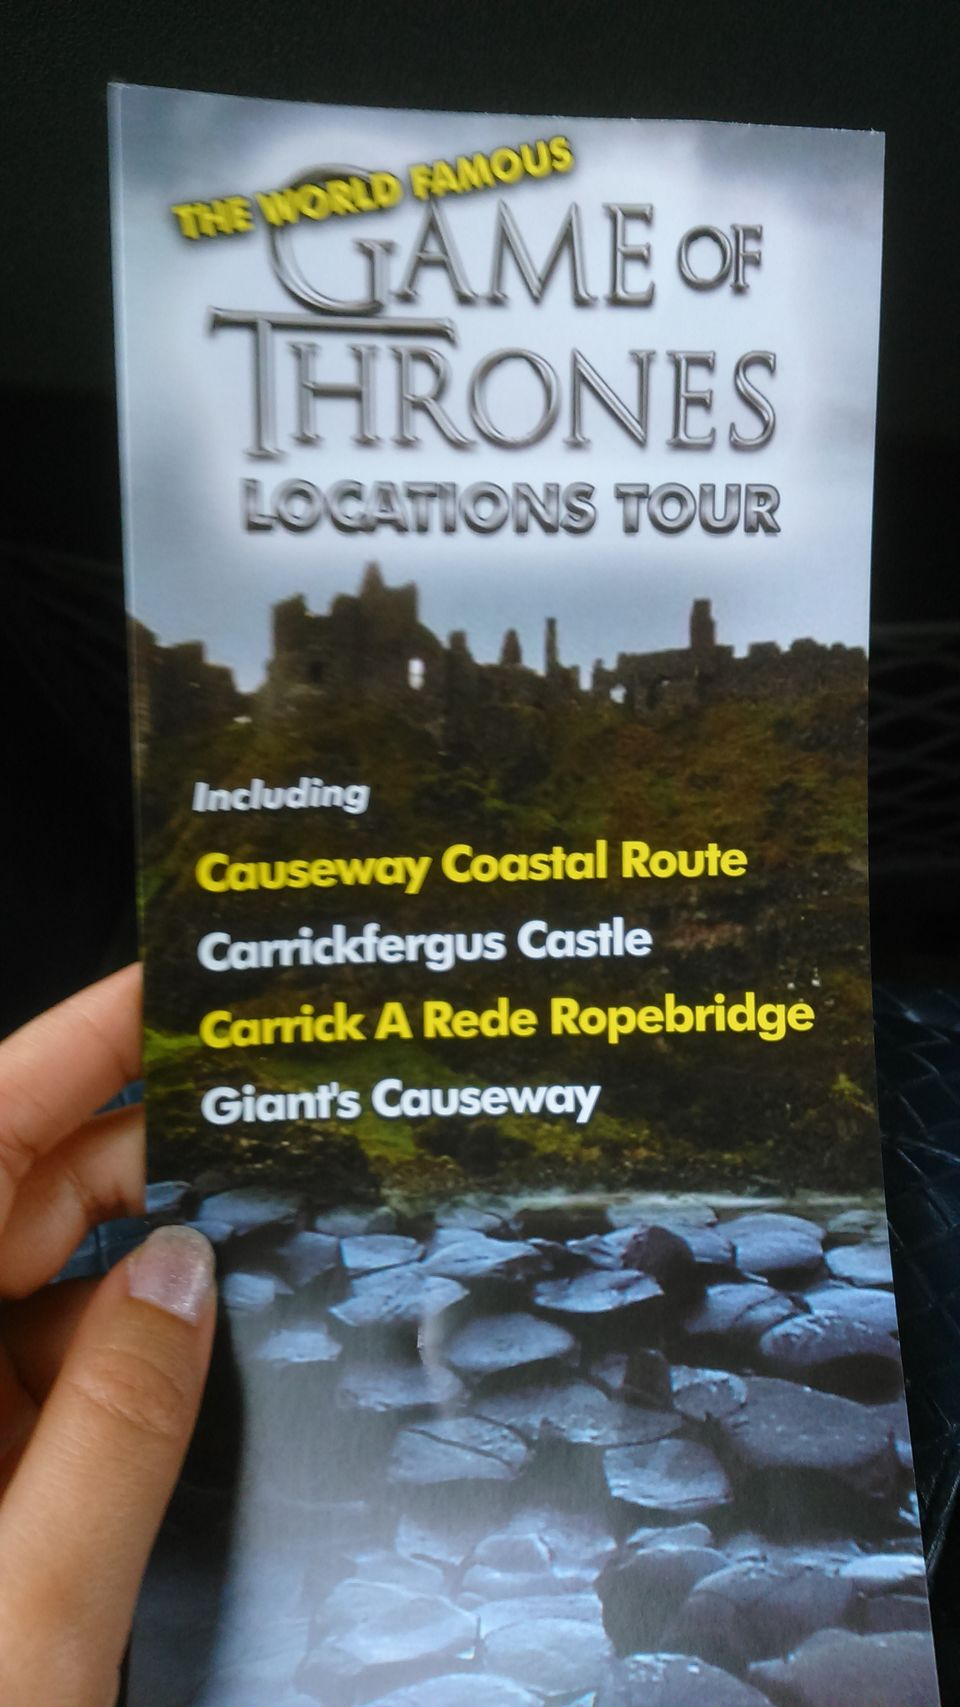 The Ultimate Day Tour of Northern Ireland For Every Game of Thrones Fanatic!